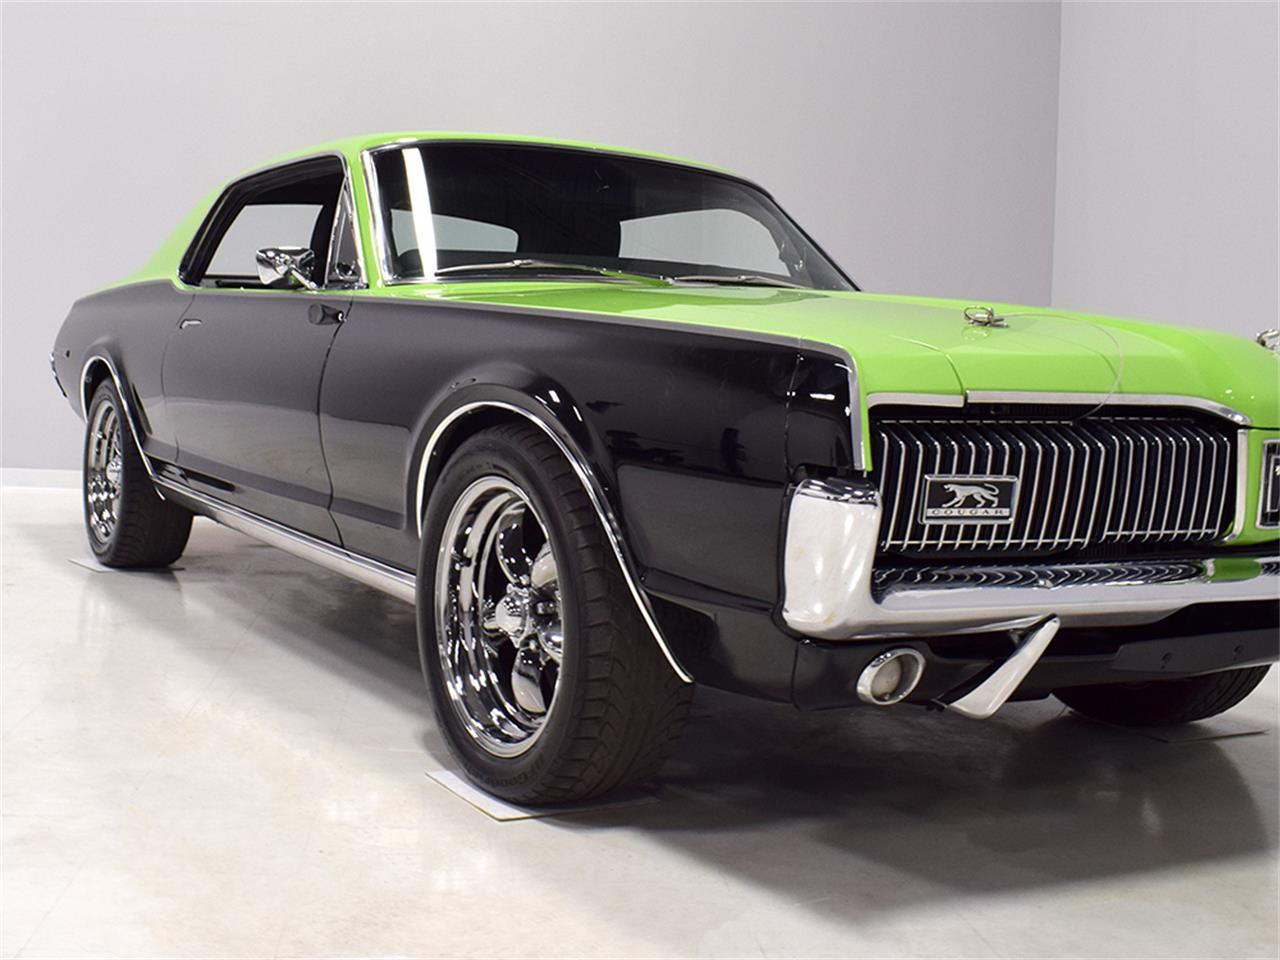 Large Picture of Classic '67 Mercury Cougar located in Ohio Offered by Harwood Motors, LTD. - MH5X